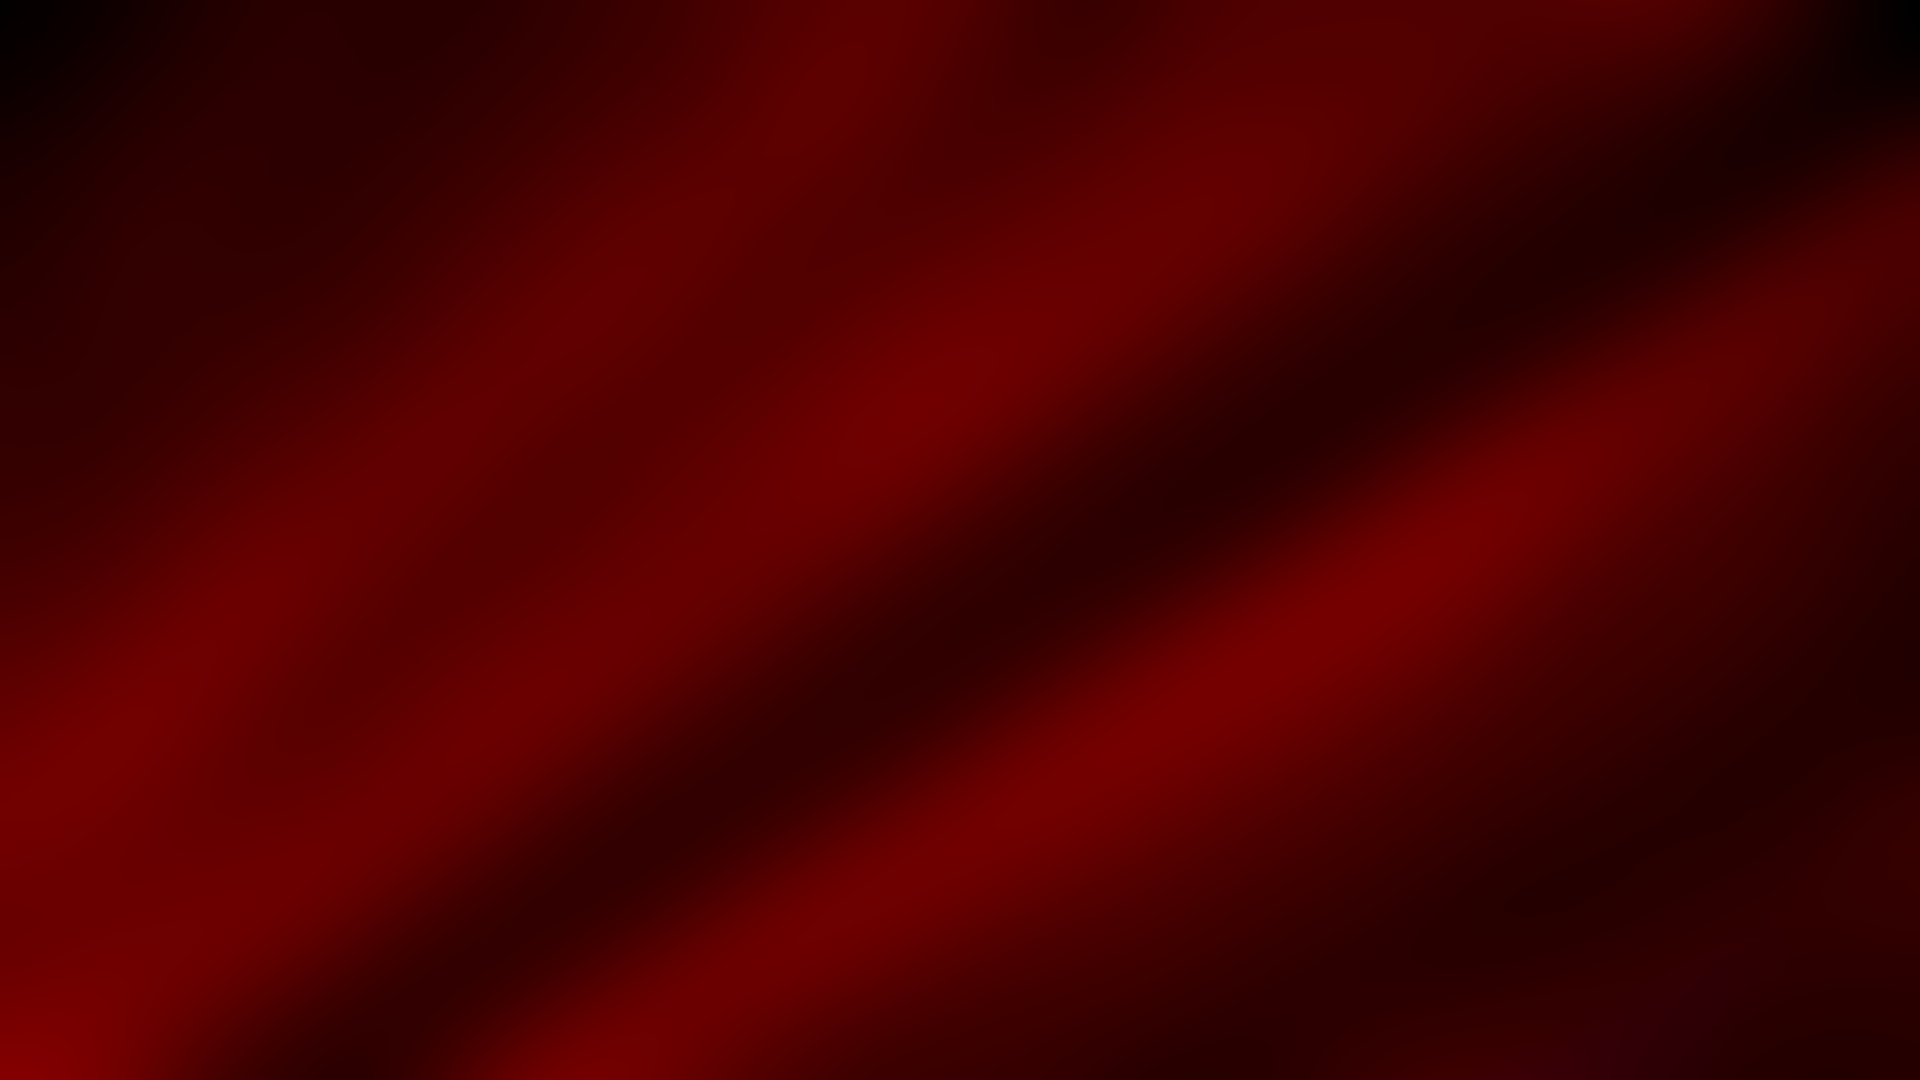 red blurry desktop wallpapers ojdo